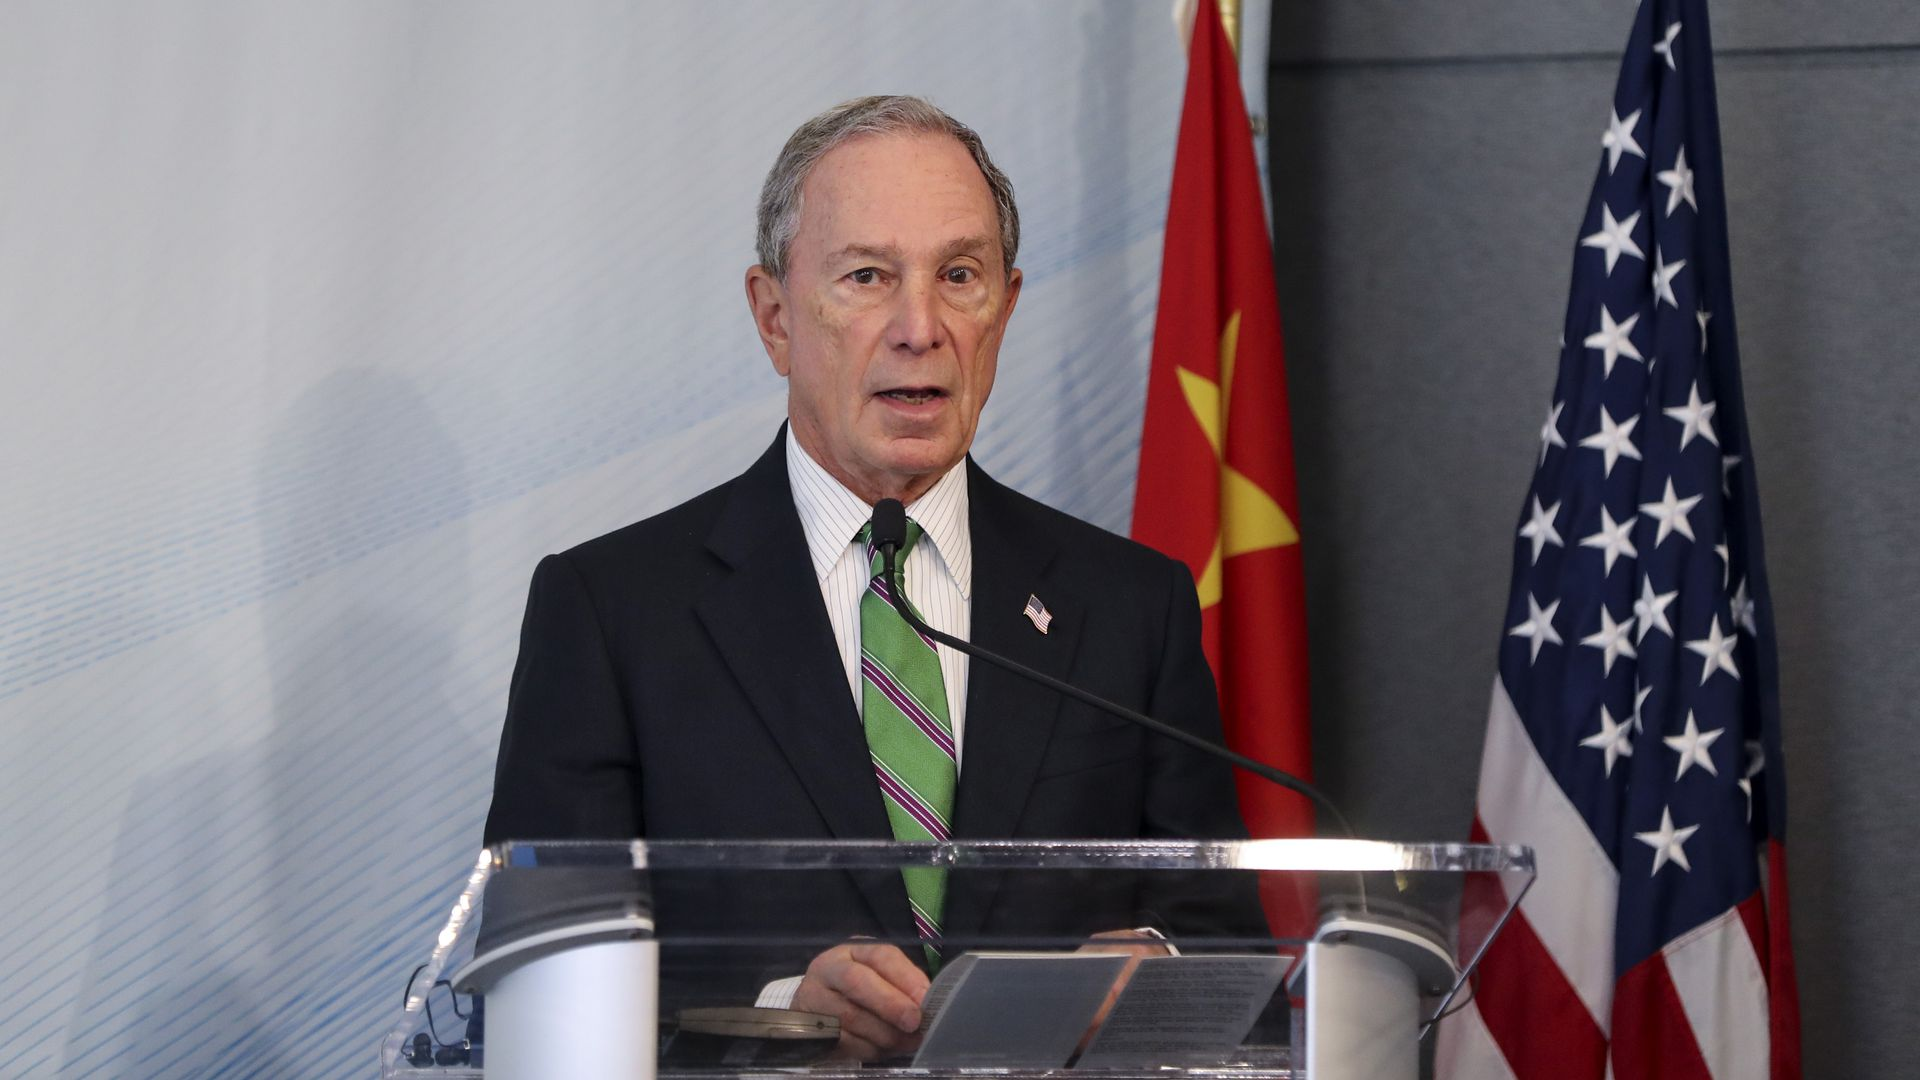 New York City mayor Michael Bloomberg delivers a speech at the High-level Dialogue on U.S.-China Economic Relations in New York, the United States, on June 14